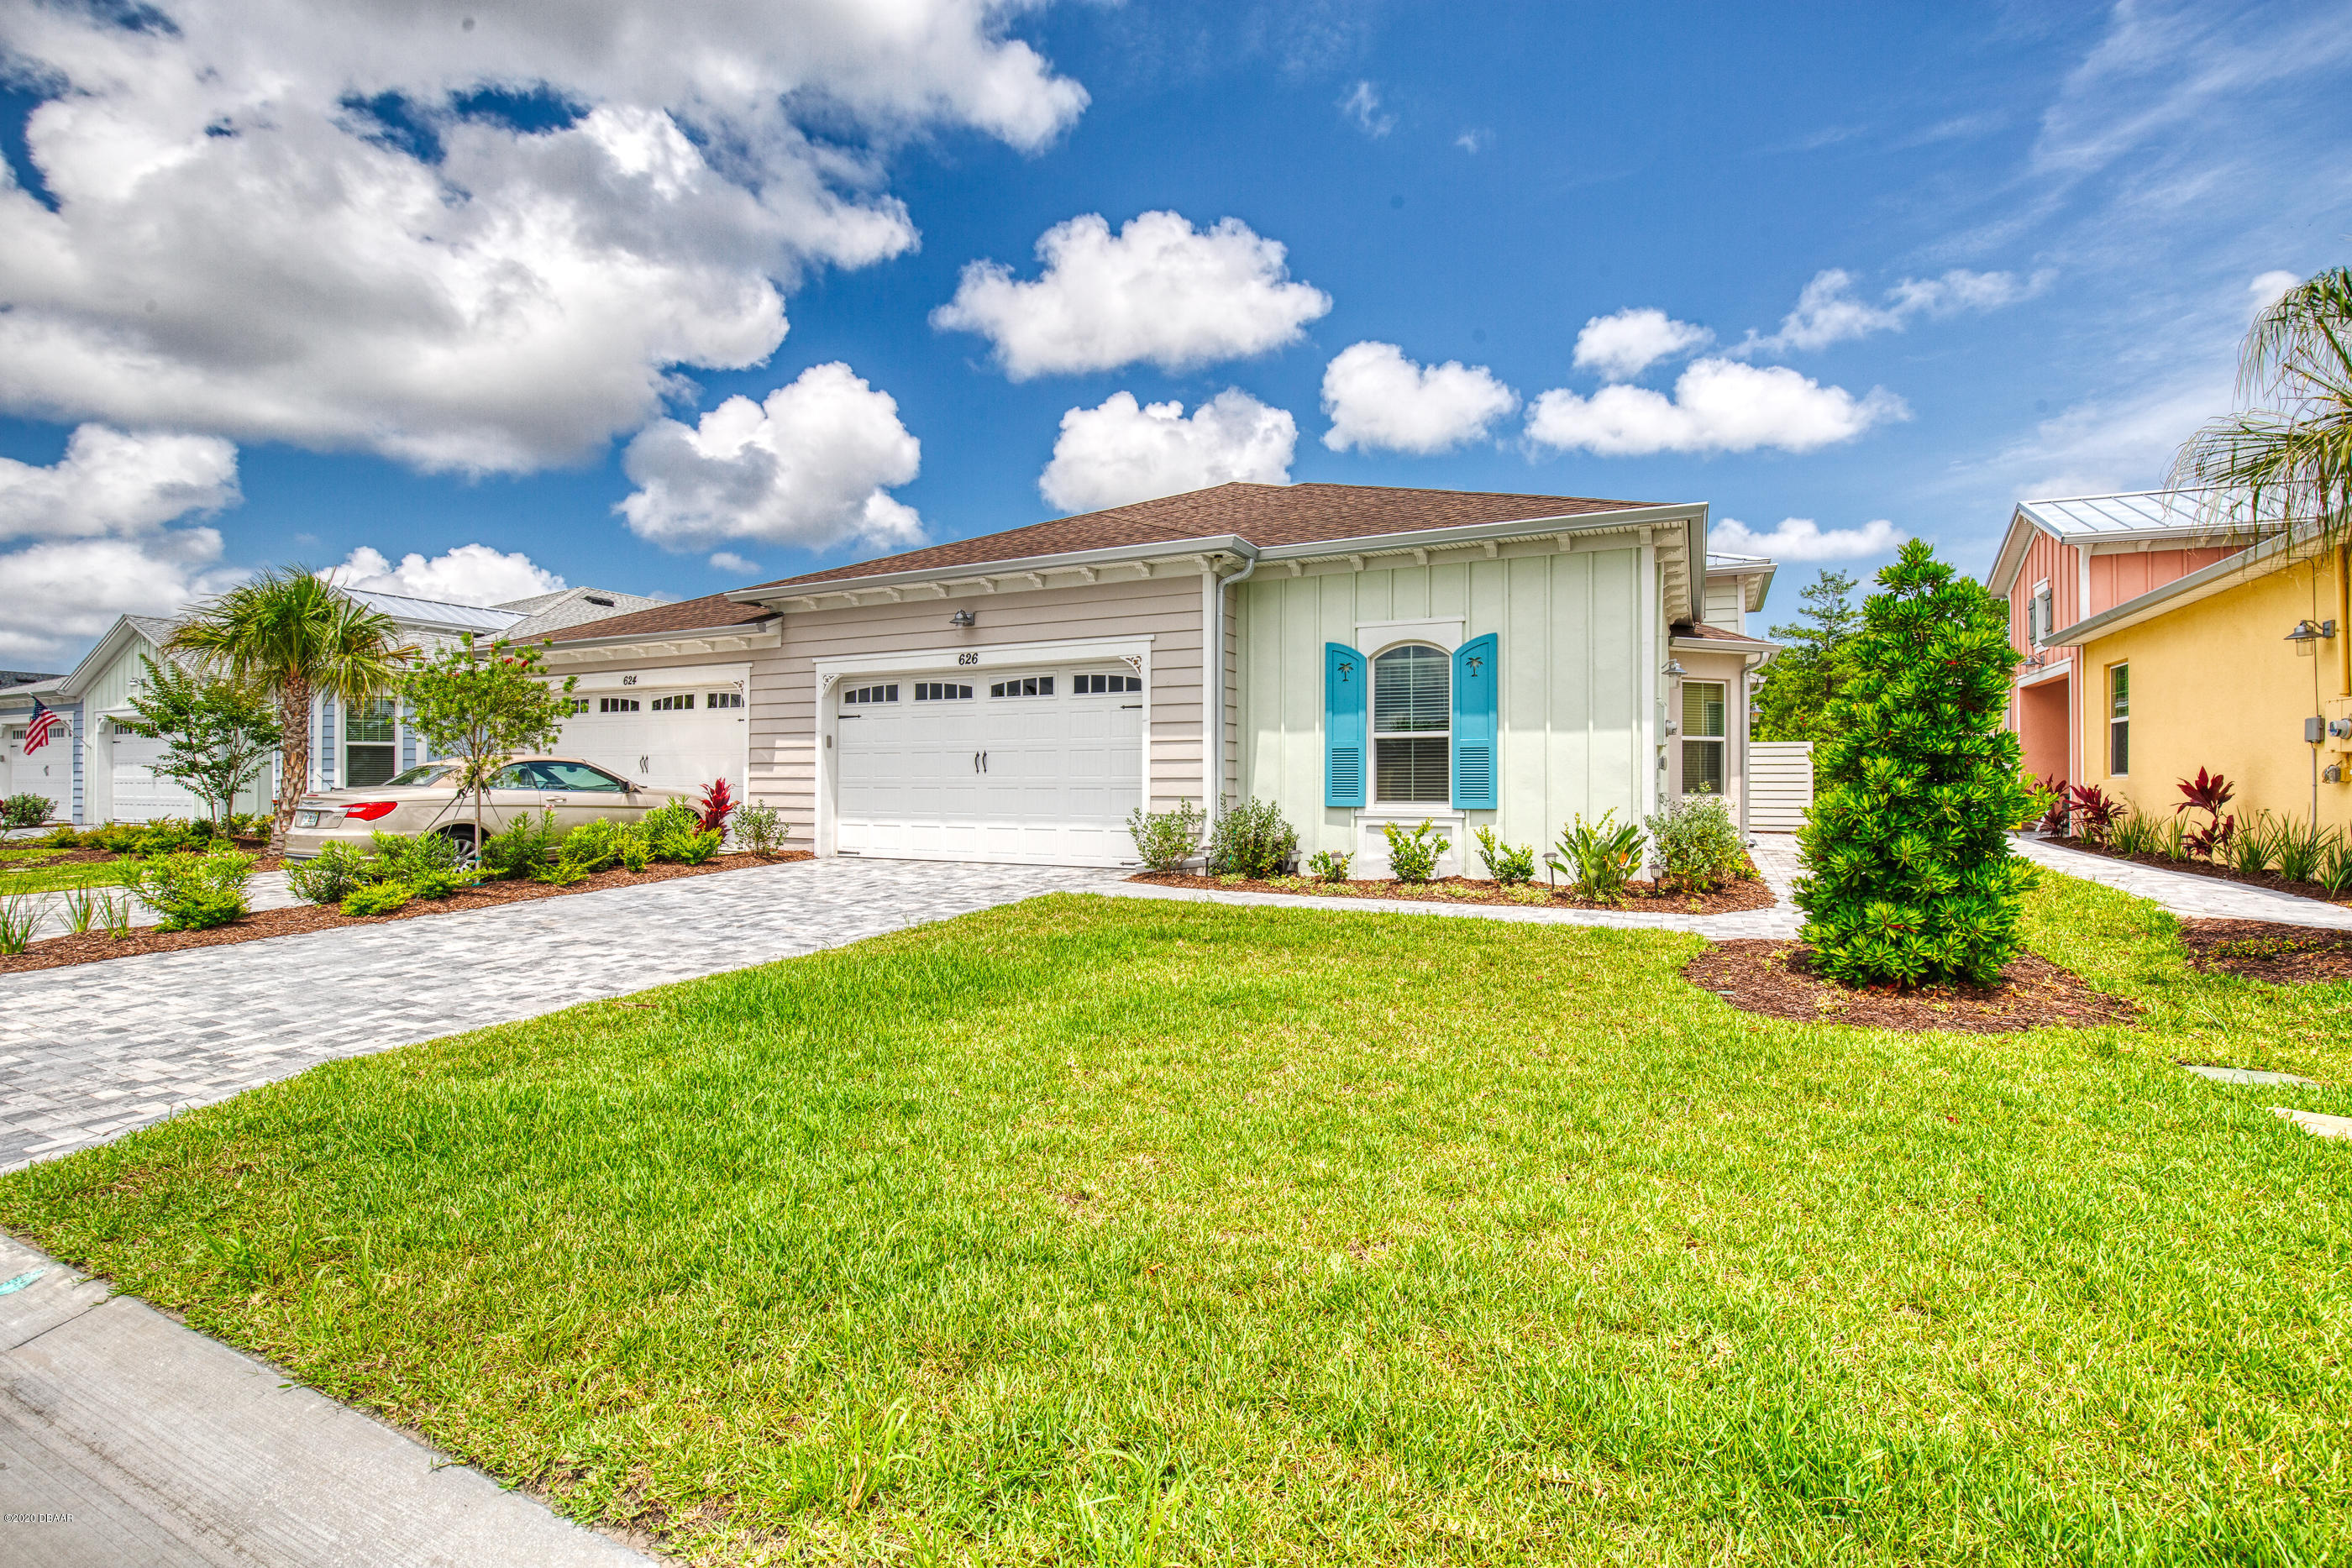 Photo of 626 Land Shark Boulevard, Daytona Beach, FL 32124